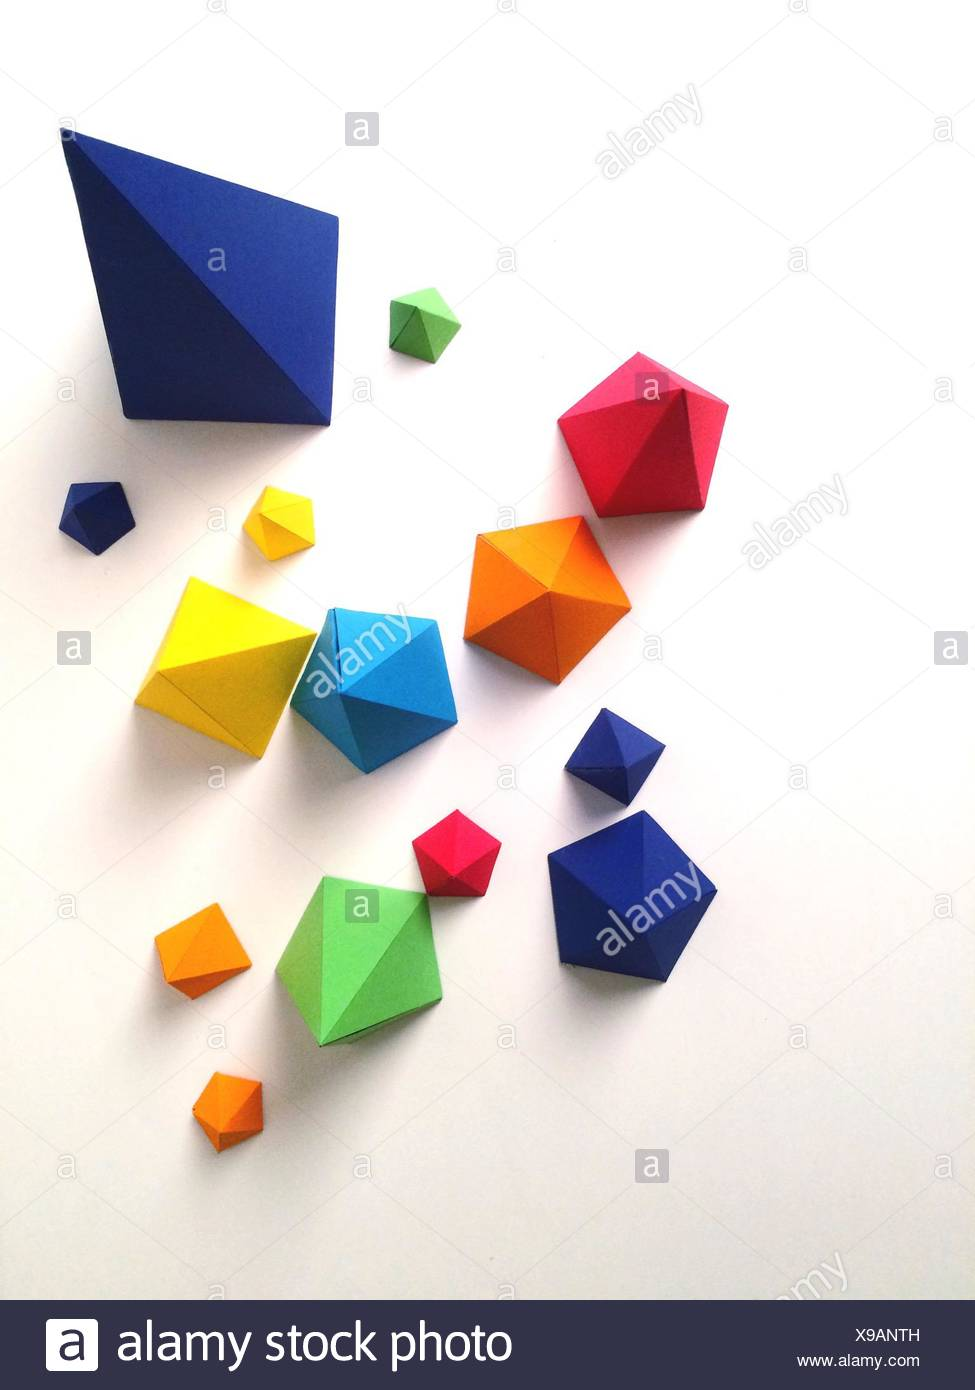 High Angle View Of Multi Colored Paper Pyramids - Stock Image